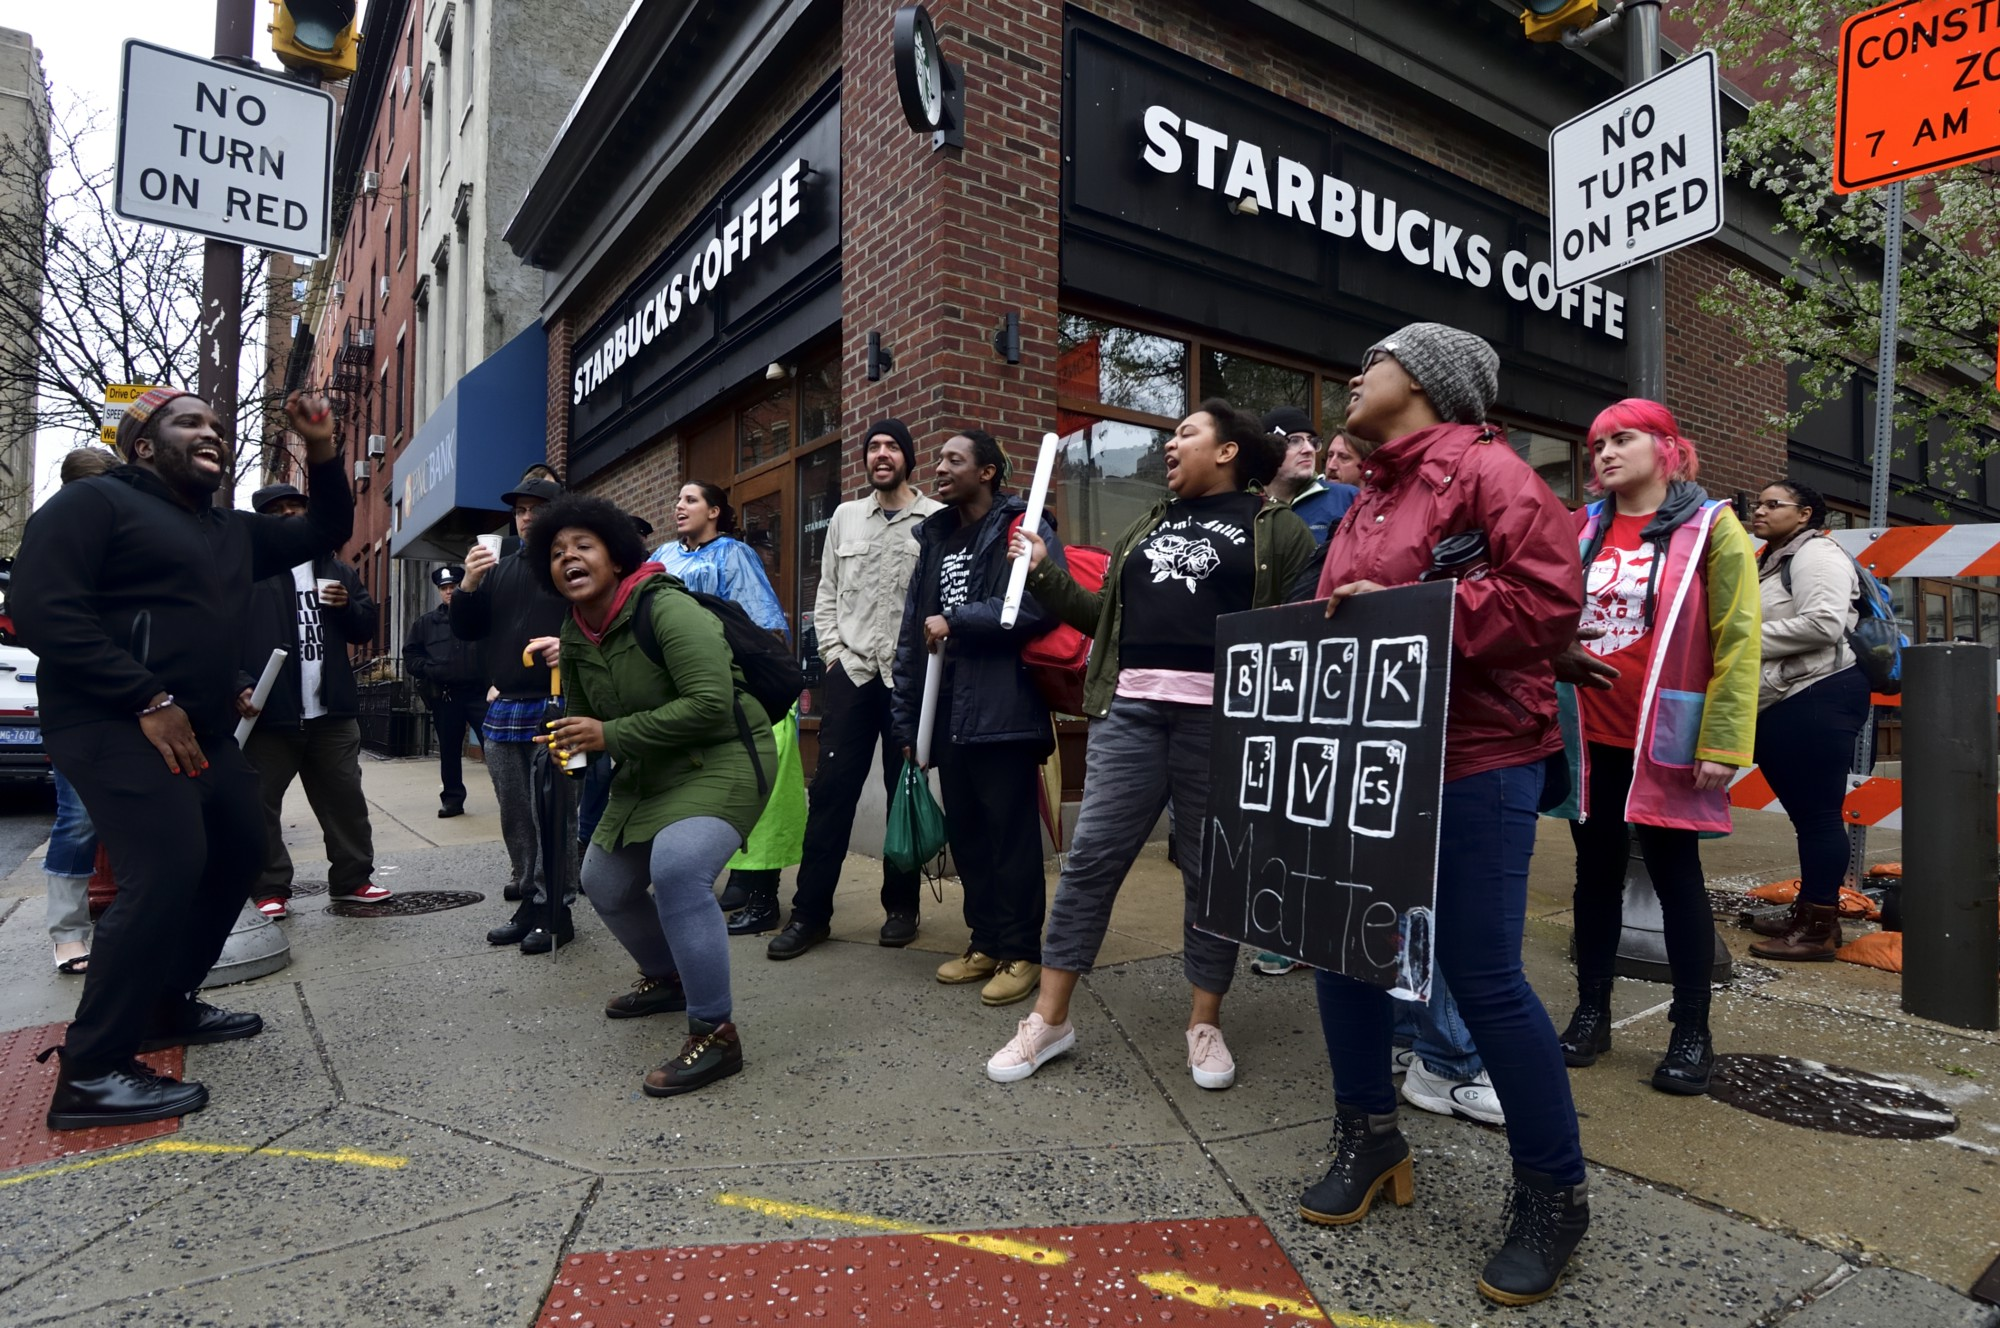 starbucks closed its stores for unconscious bias training